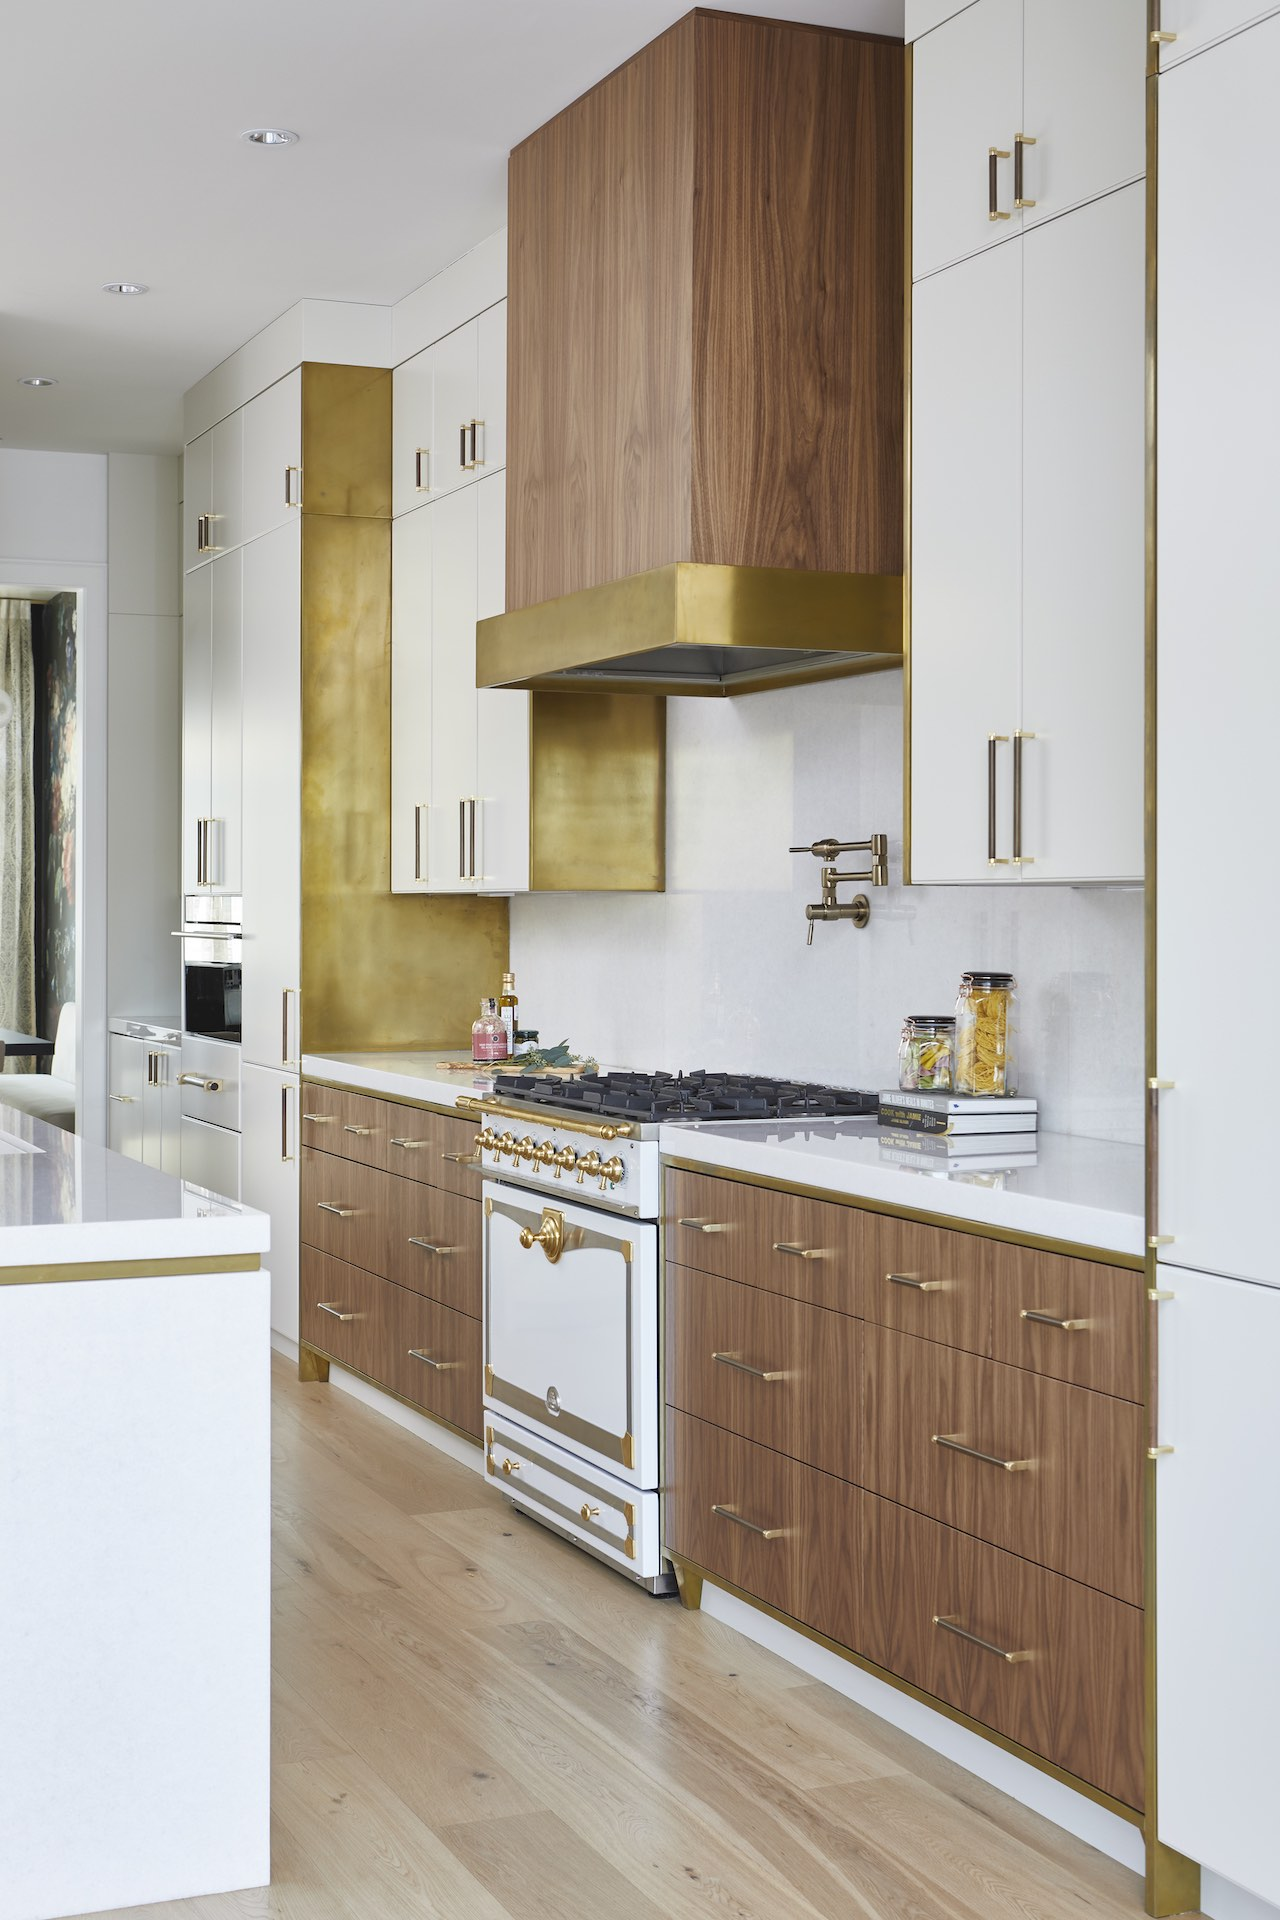 Natural wood and white kitchen with gold hardware